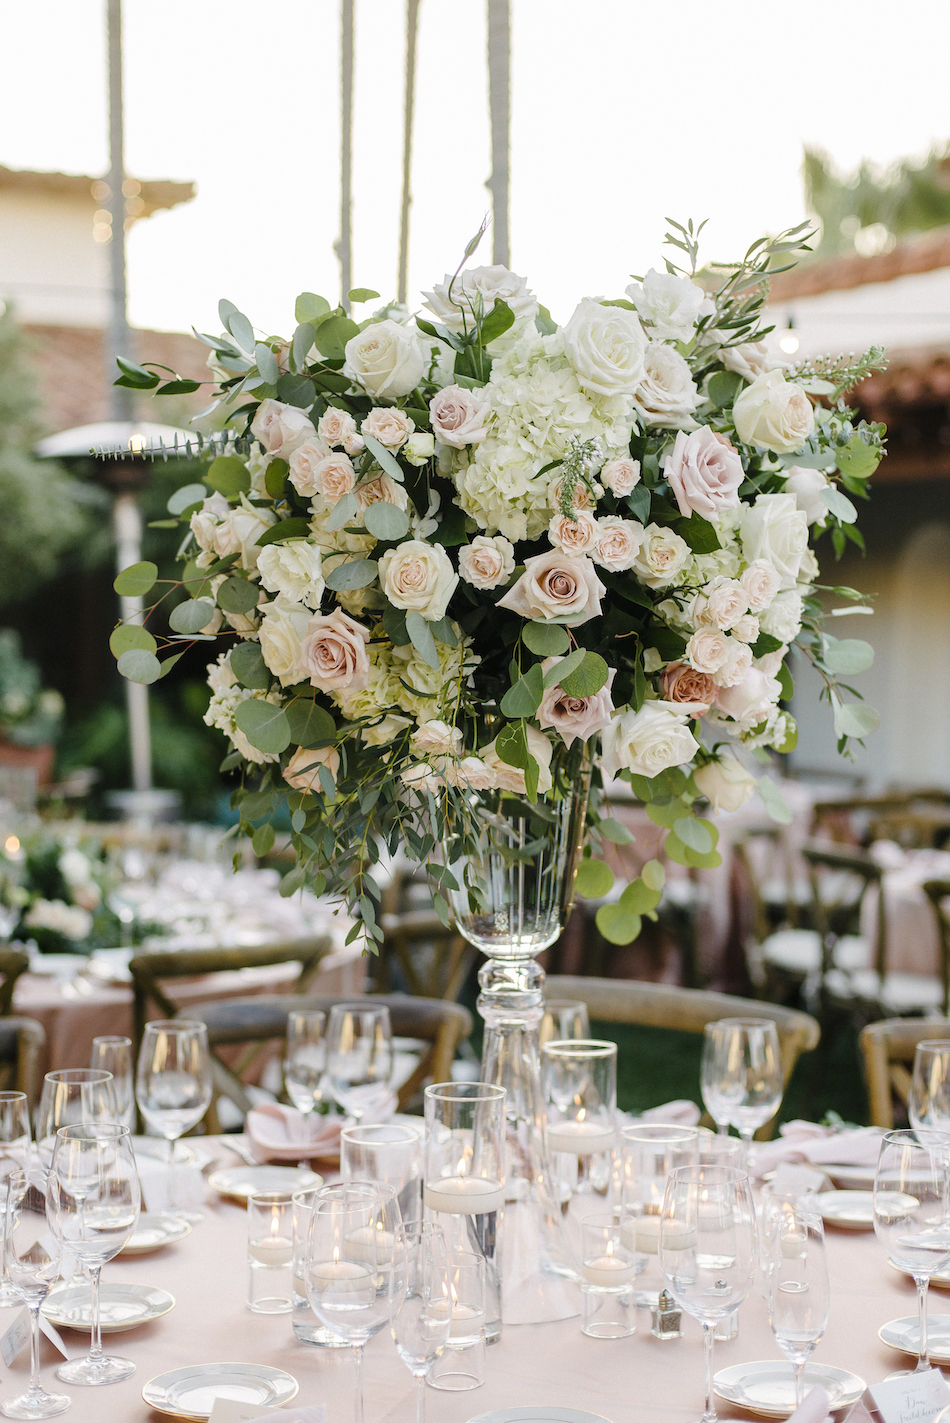 centerpiece, floral centerpiece, pastel centerpiece, traditional pastel wedding, Flowers by Cina, orange county wedding florist, orange county weddings, floral design, orange county floral designer, floral designer